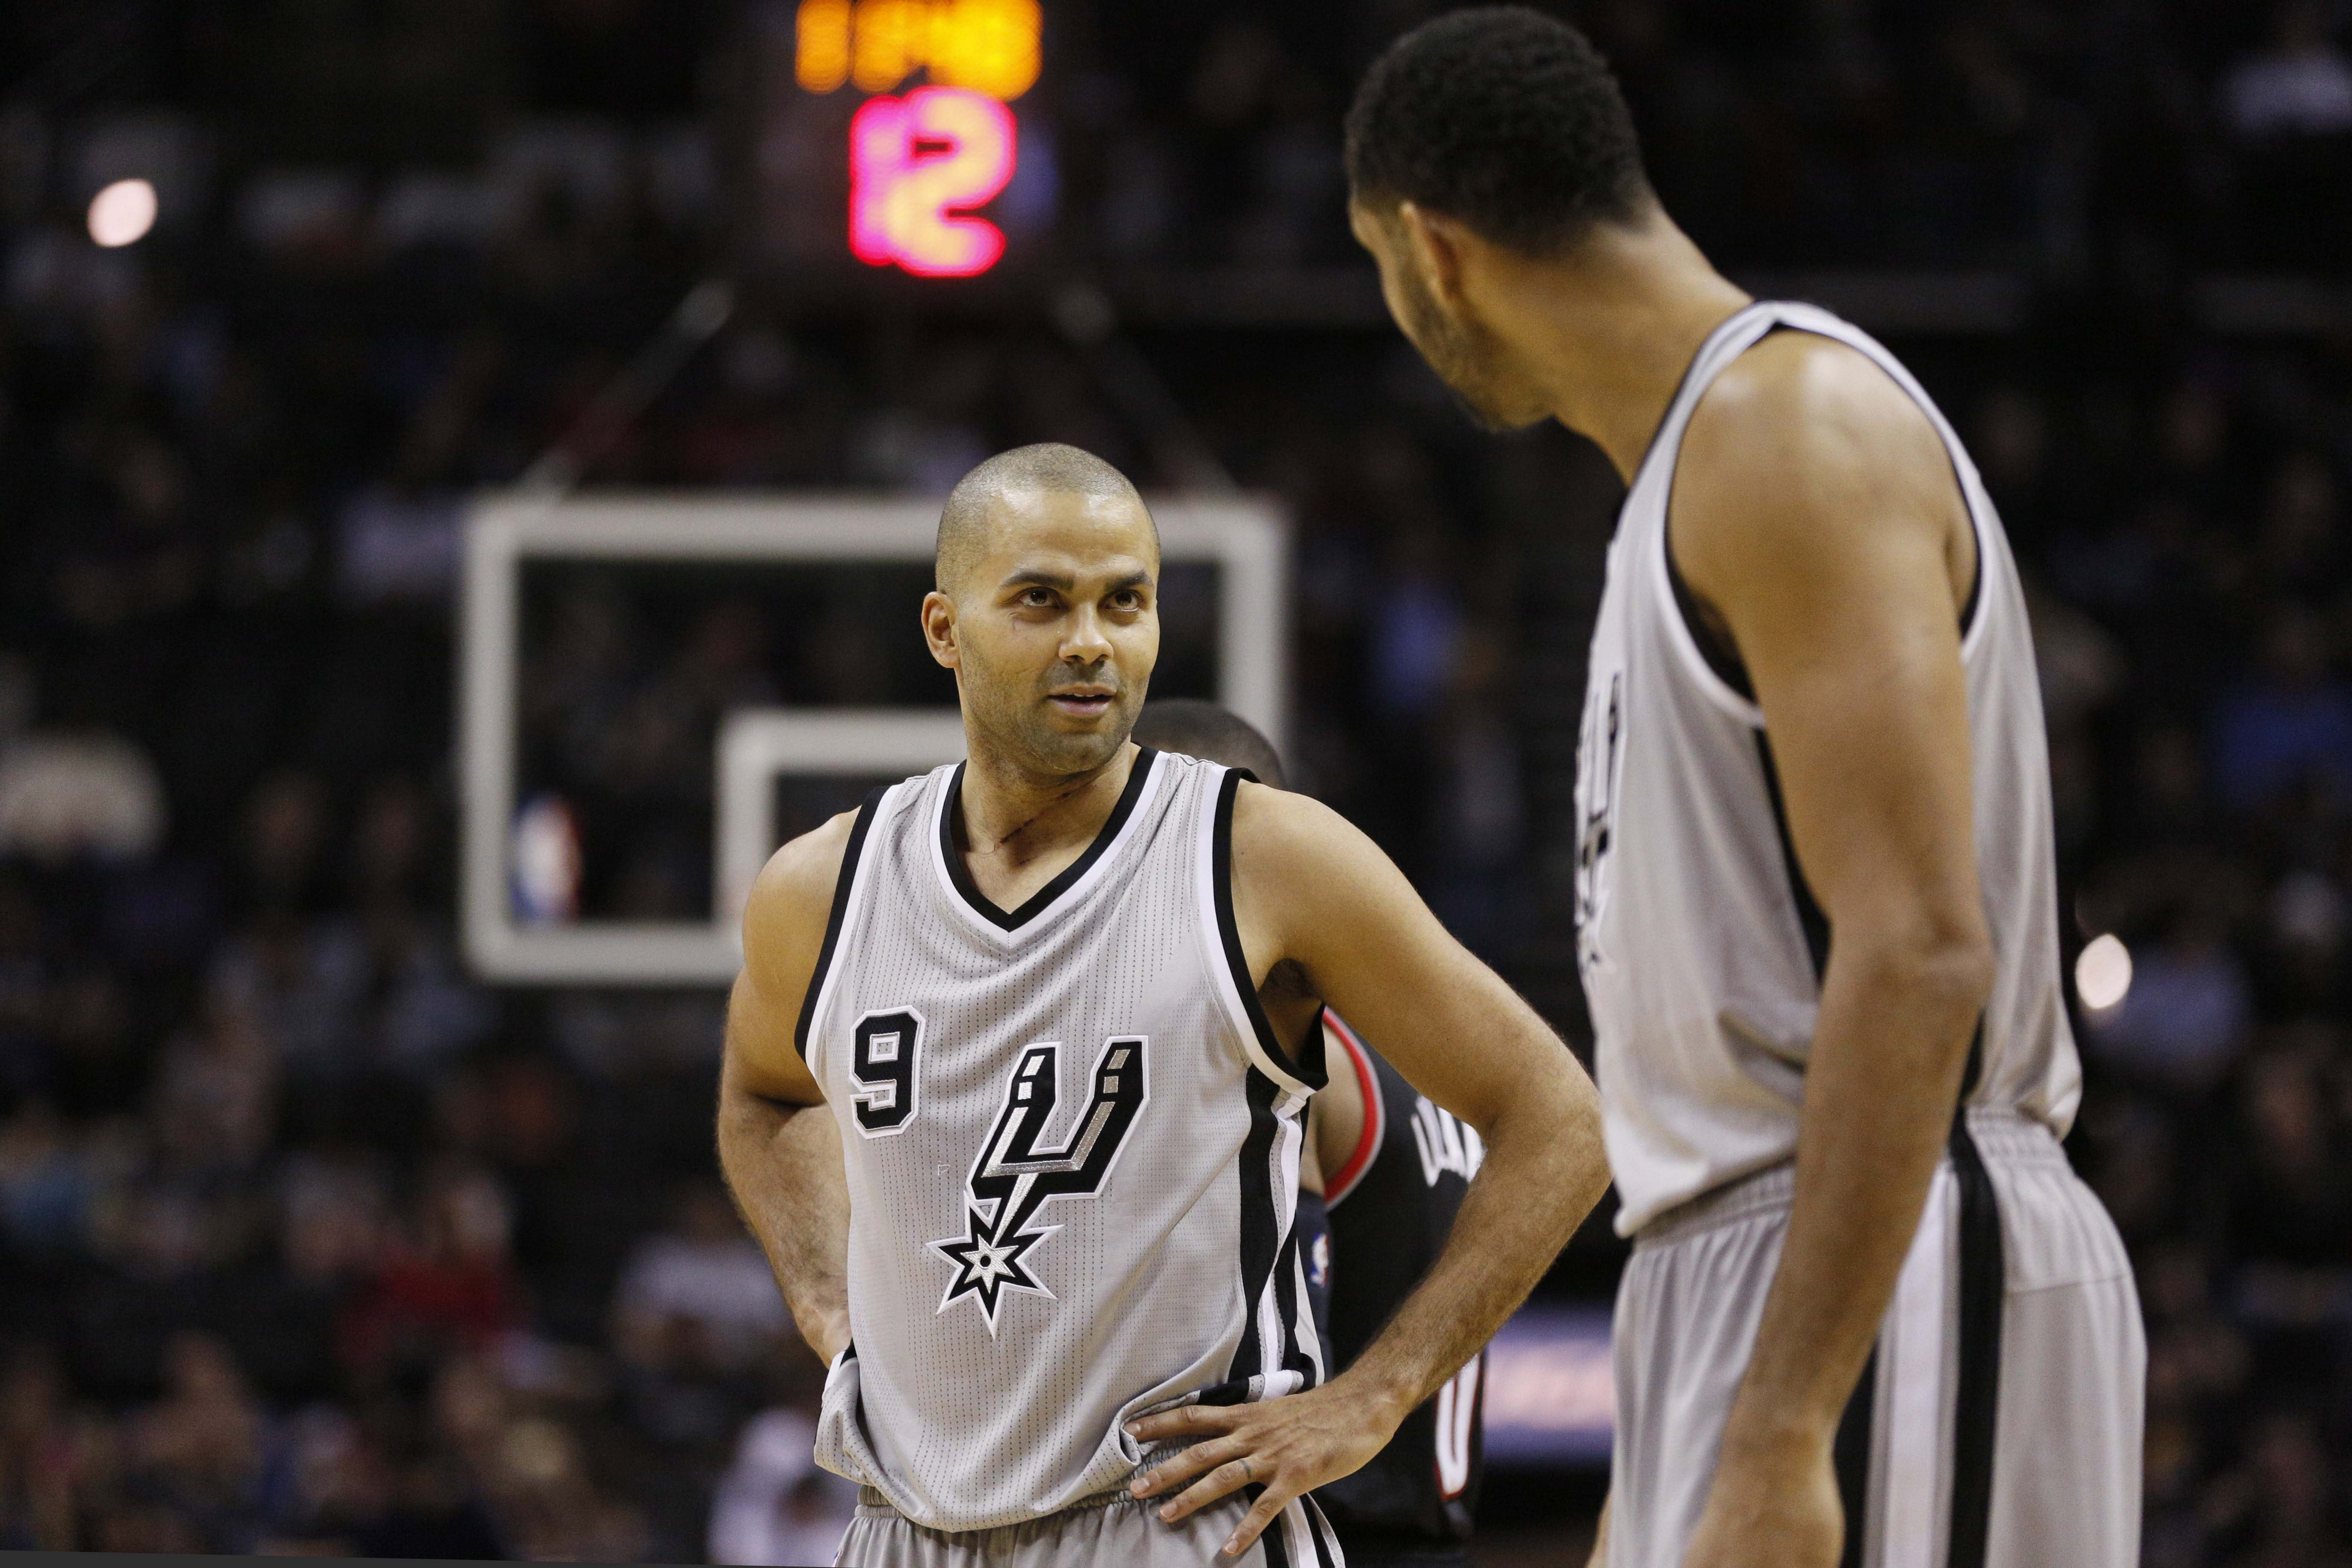 The 10-man rotation, starring Tony Parker's troubling play